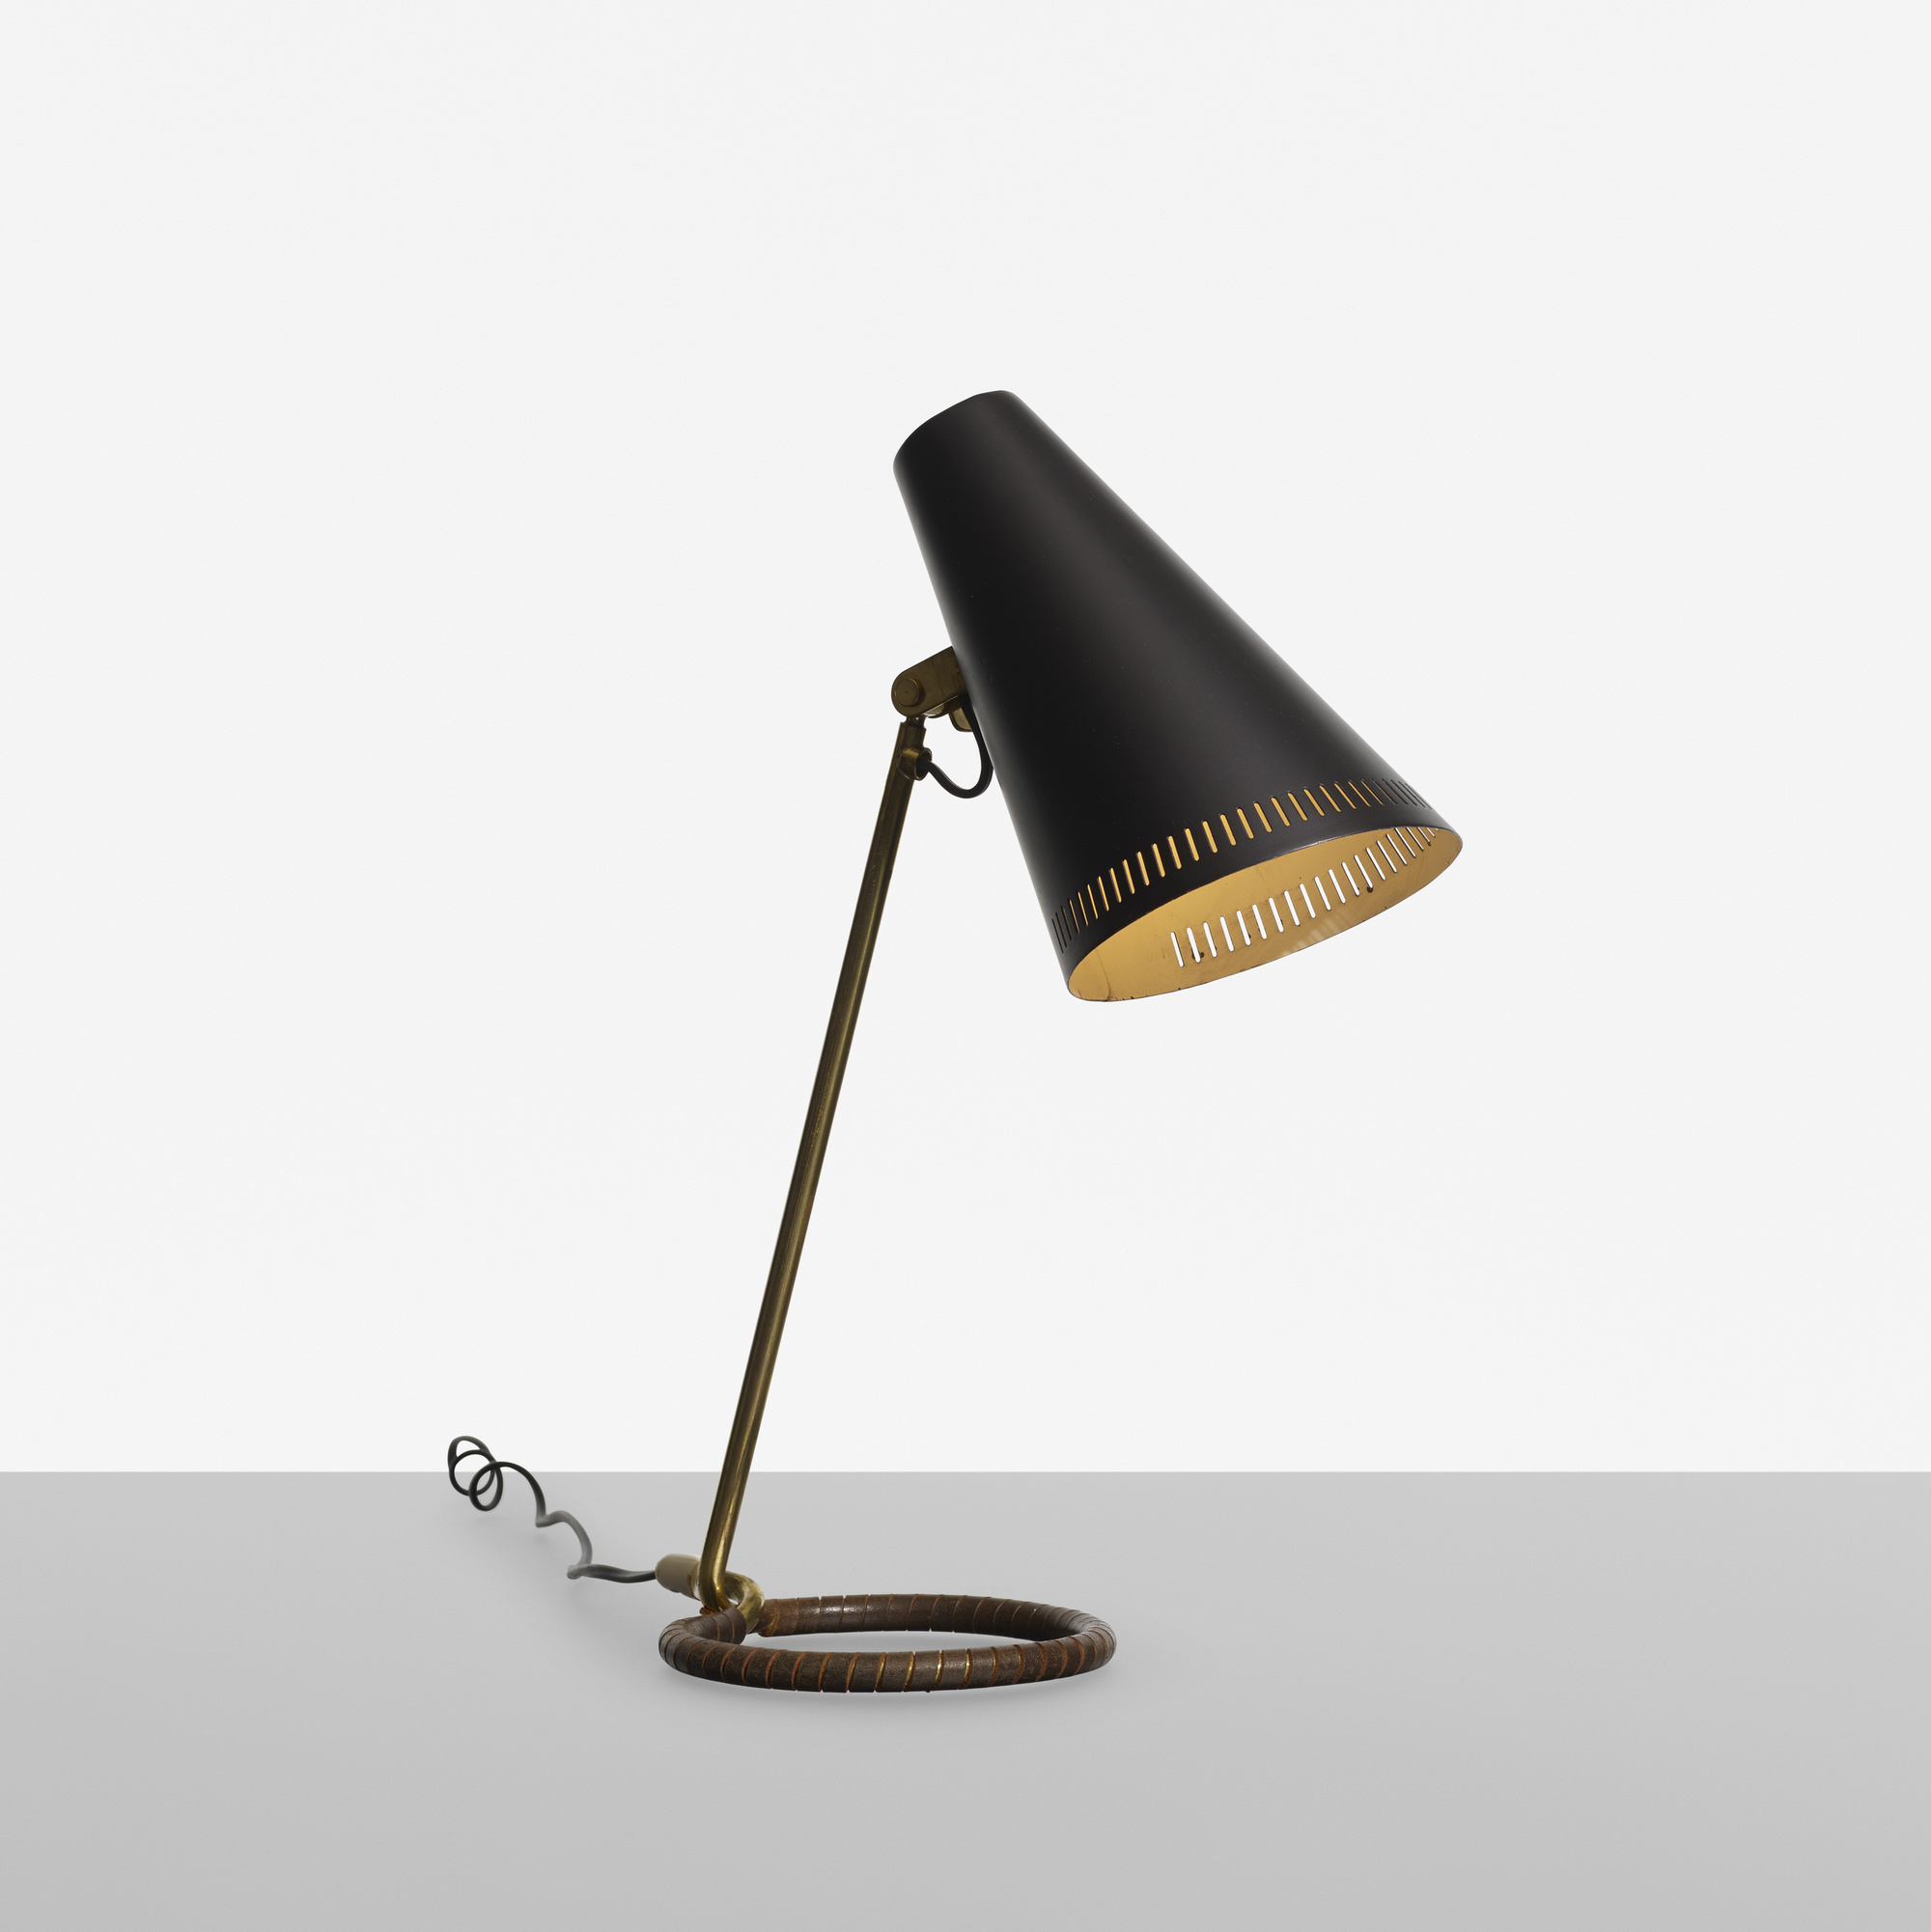 227: Mauri Almari / table lamp (1 of 1)